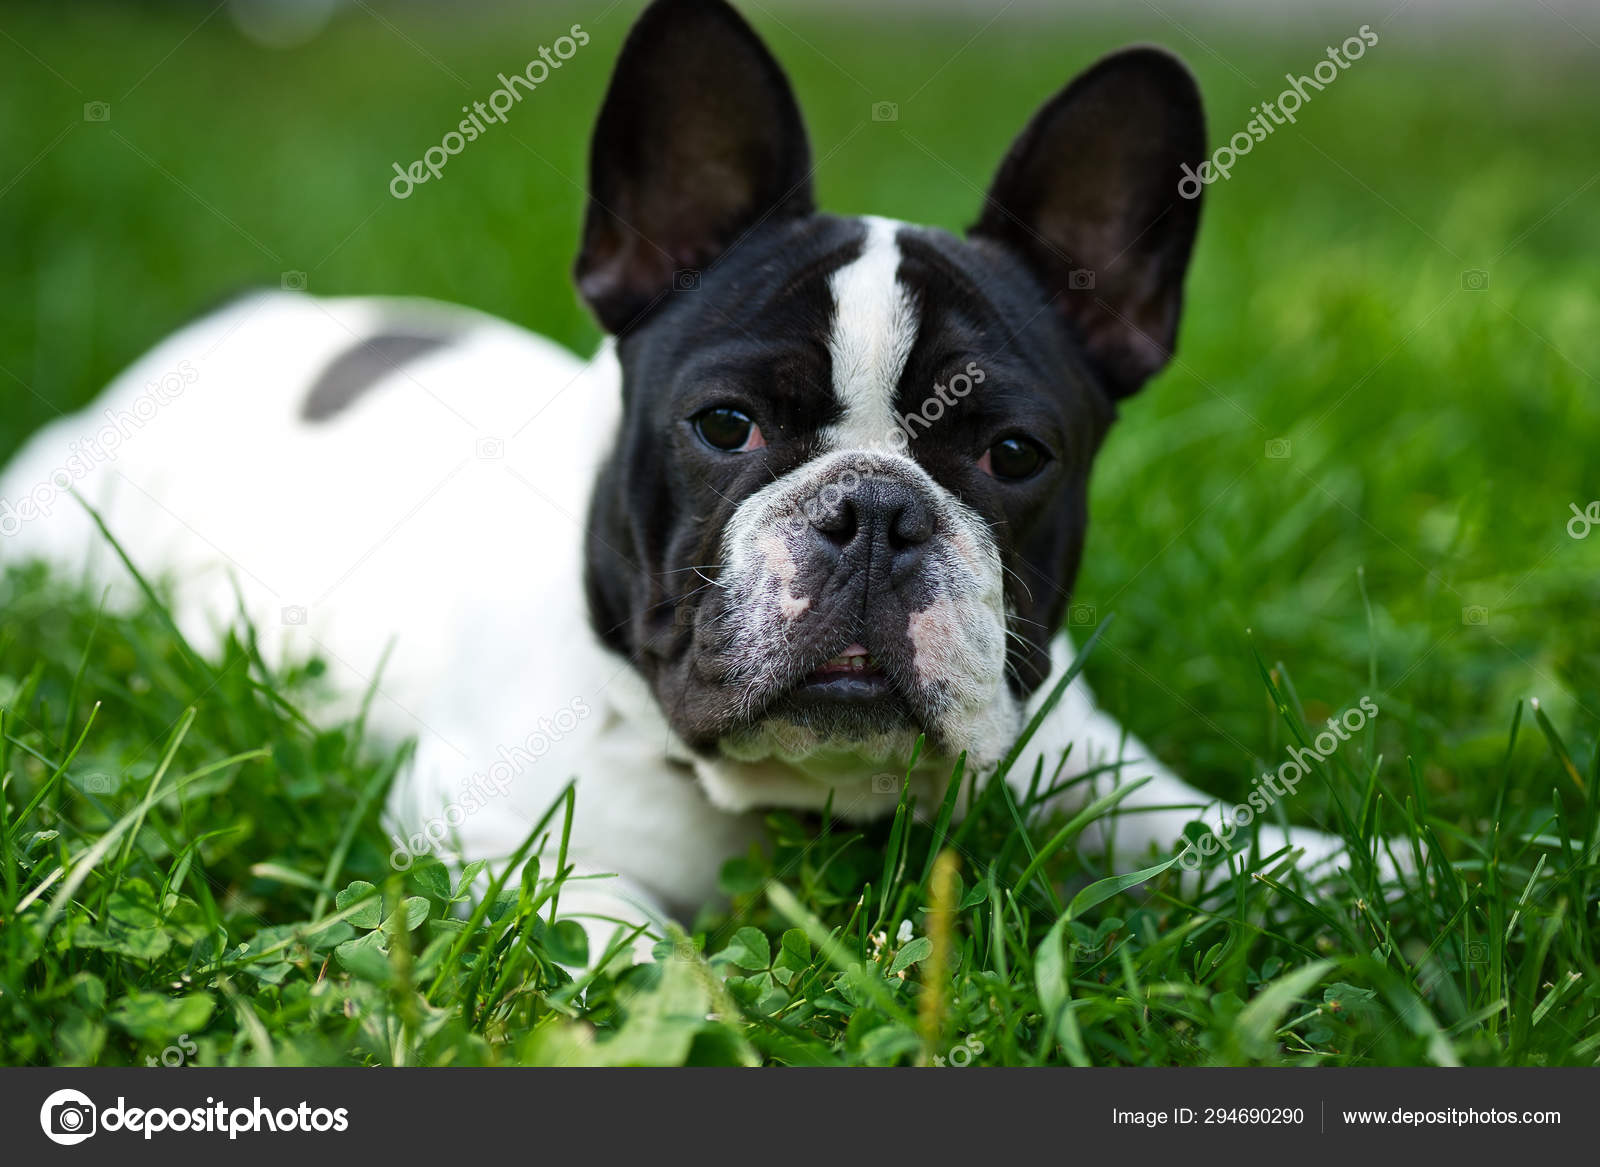 Cute Adorable Black And White French Bulldog Puppy In The Grass Stock Photo C Keyci13 Gmail Com 294690290